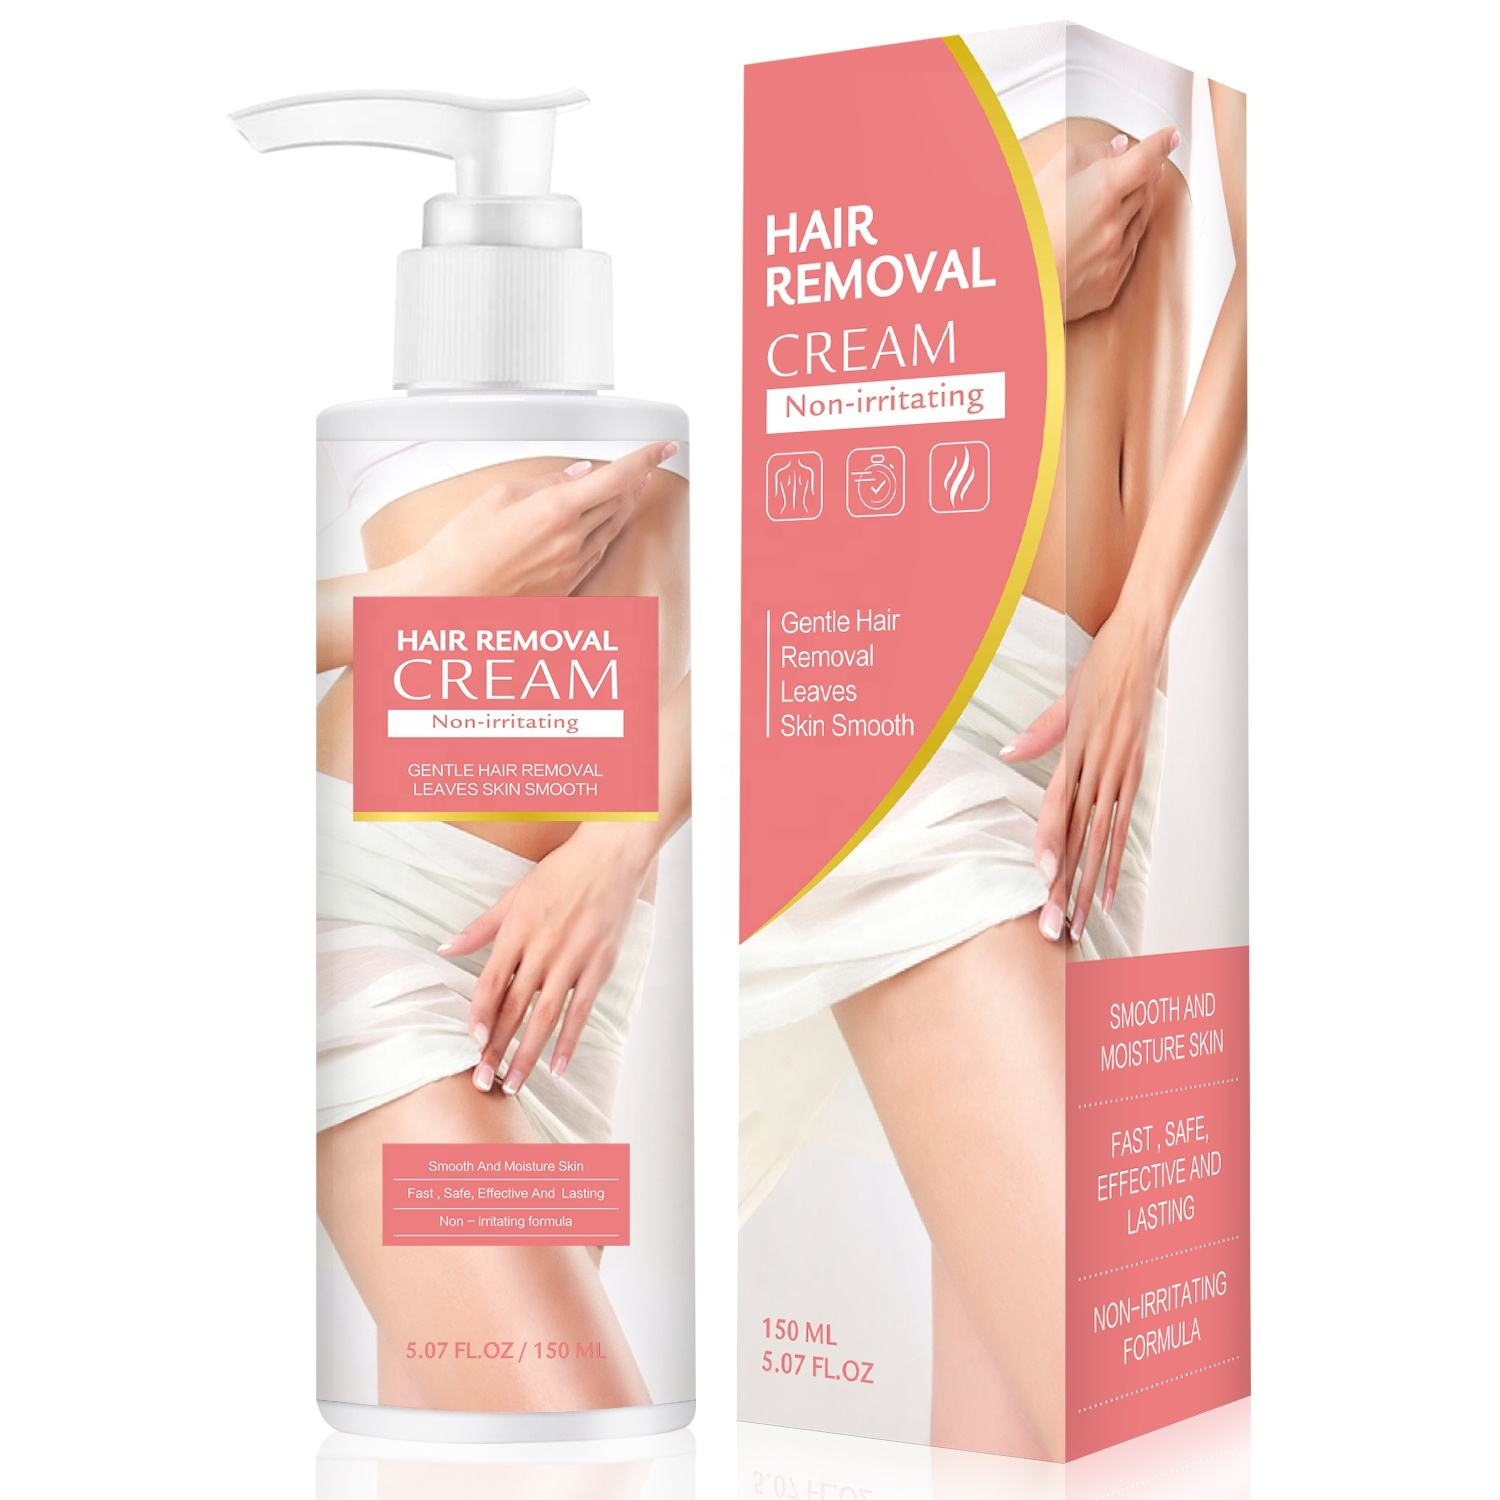 Effective Non-irritating Hair Removal Cream Fast Remove Unwanted Body Hair in 5 minutes Depilatory Cream 150ml